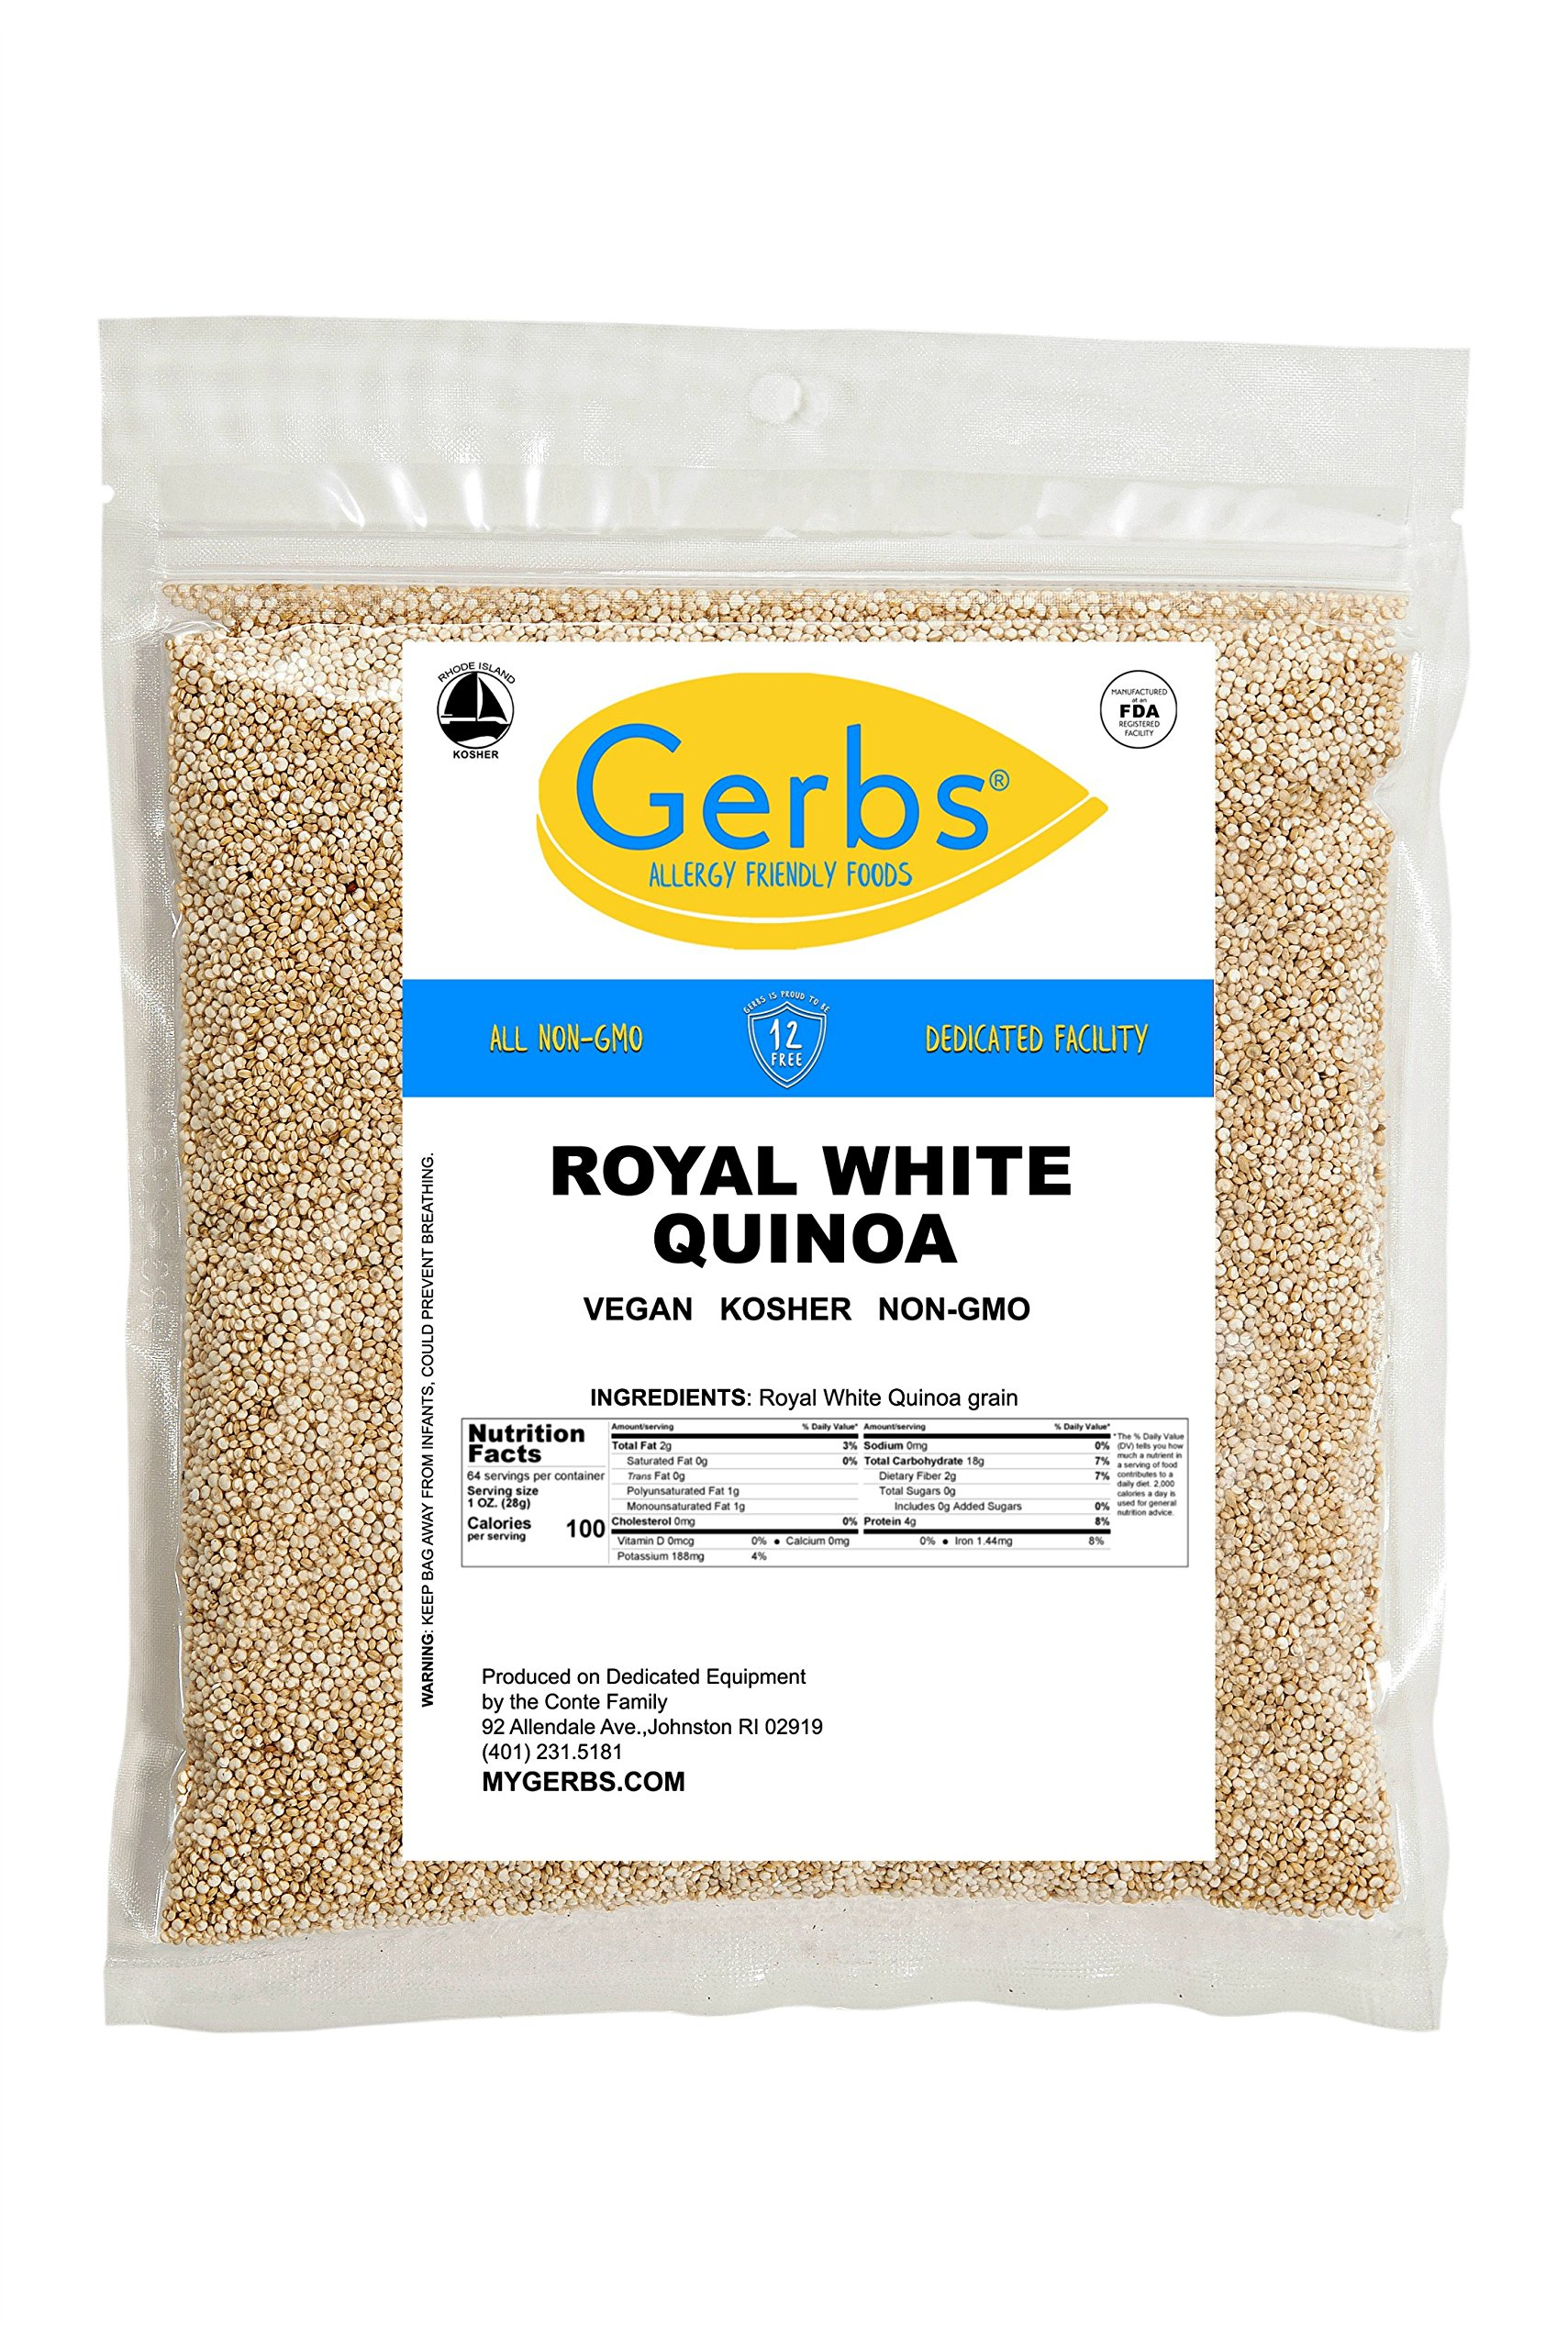 GERBS White Quinoa Grain, 4 LBS - Top 12 Food Allergy Free & NON GMO by Vegan & Kosher – Packaged on Dedicated Equipment in USA